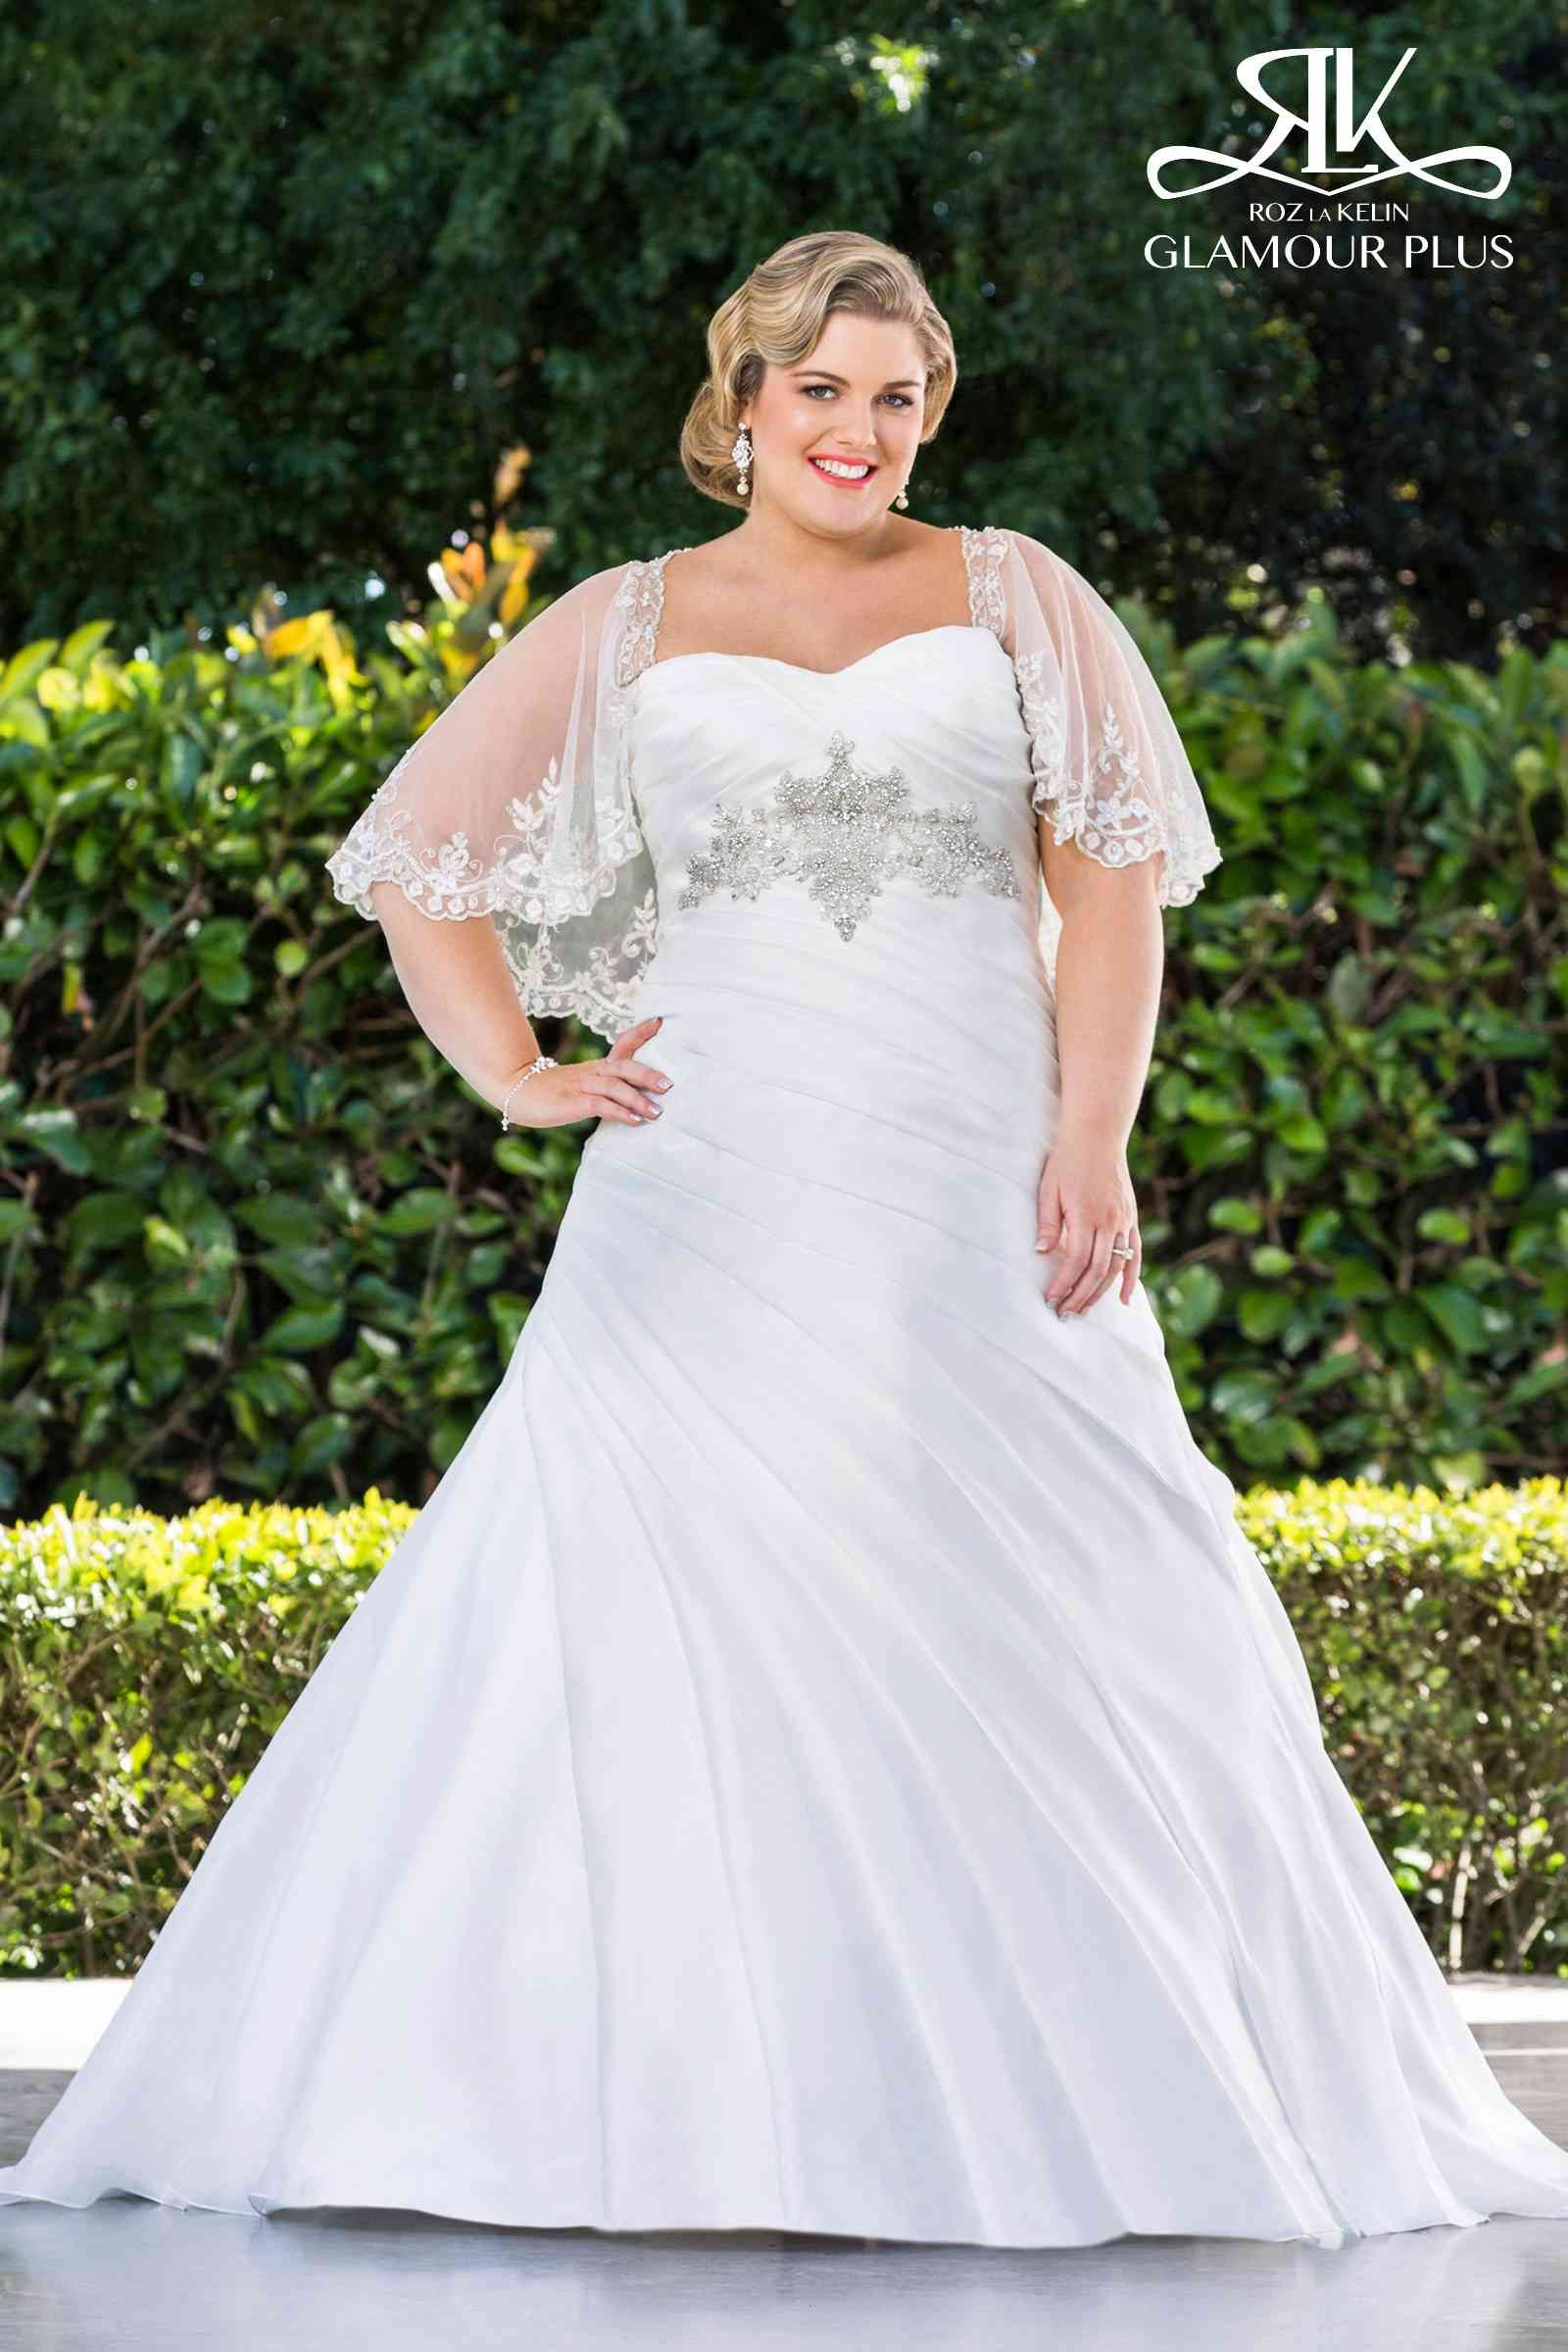 wedding dresses for a fuller figure - Google Search | Wedding ...